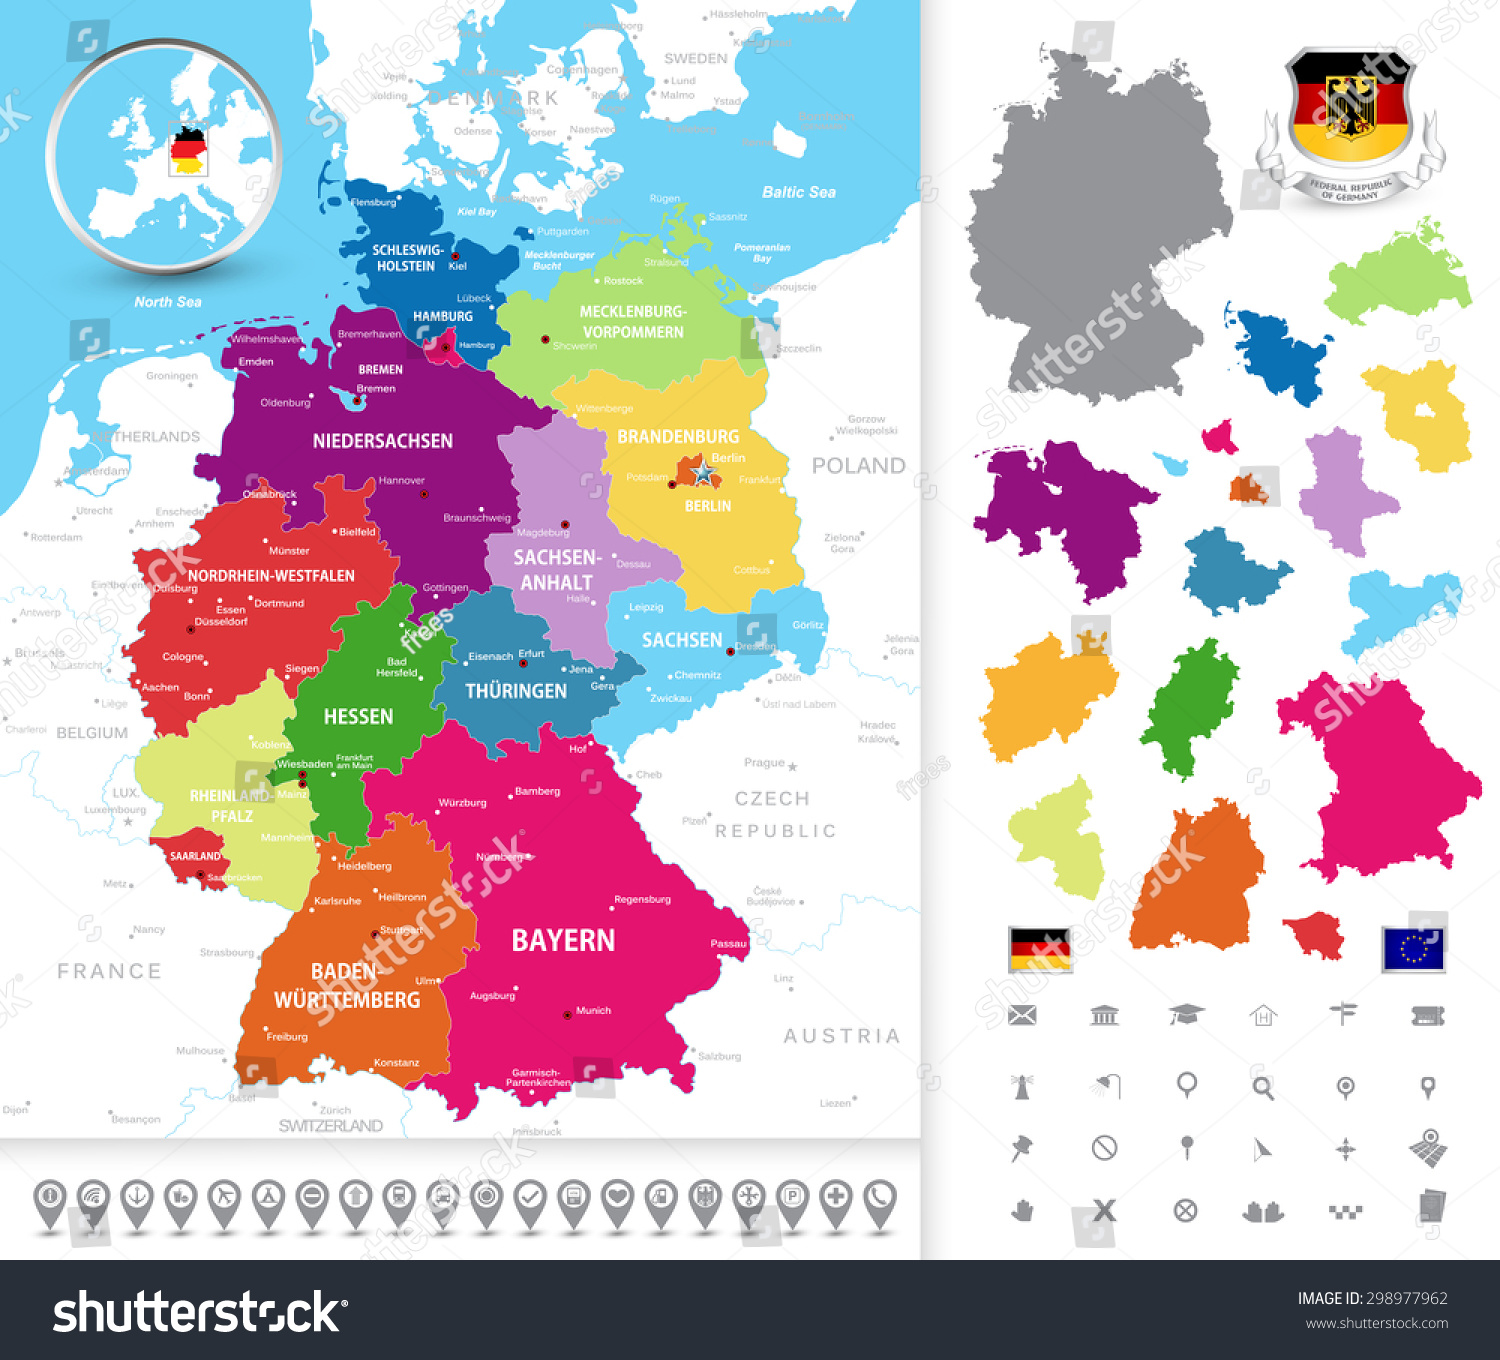 highly detailed political map of germany with administrative divisions states cities and navigation